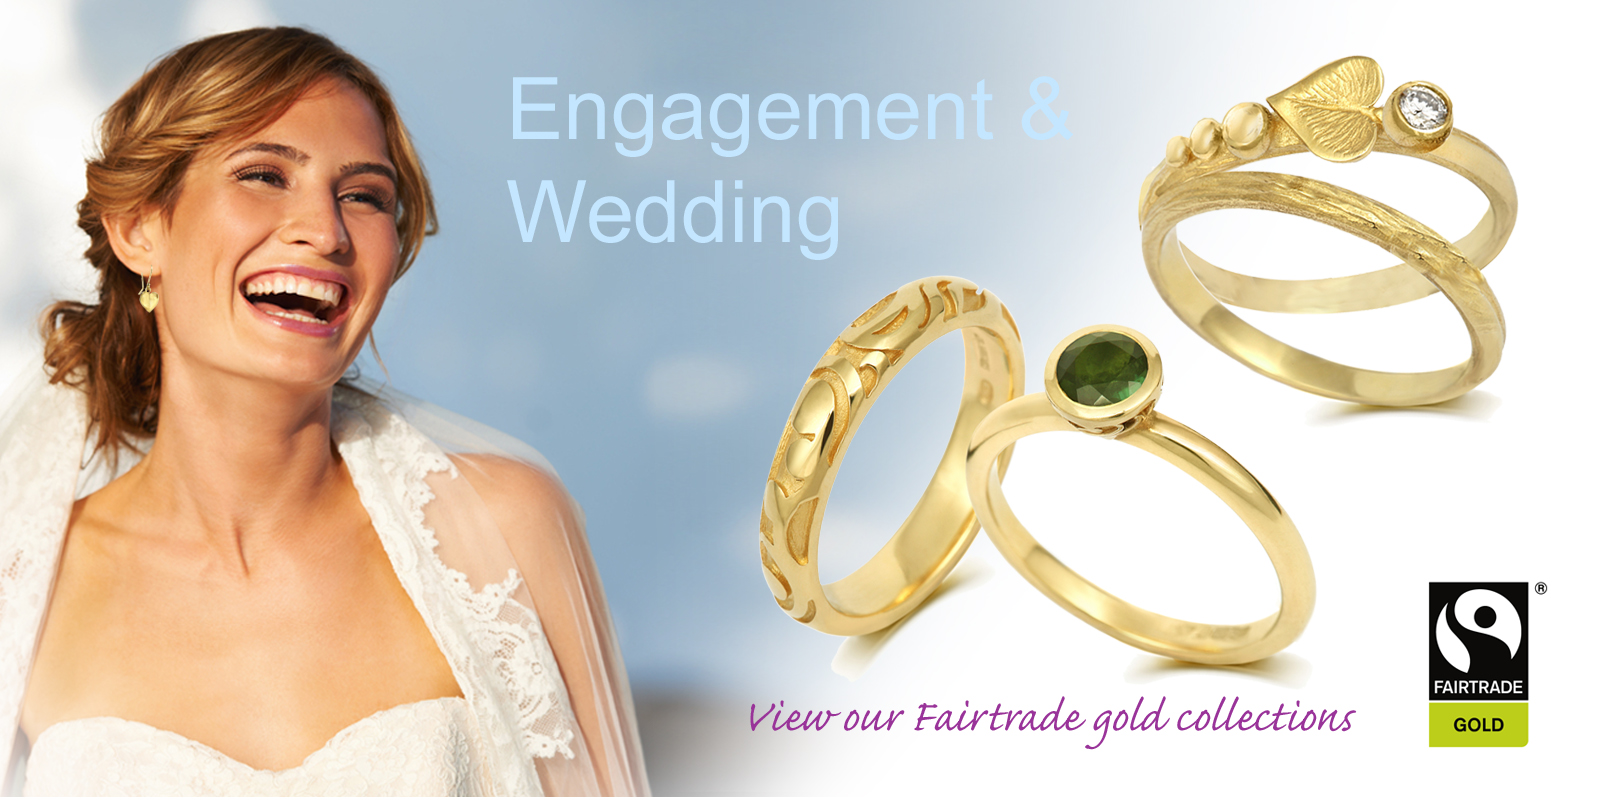 Fairtrade Gold Wedding Rings. Fairtrade Gold Engagement Rings